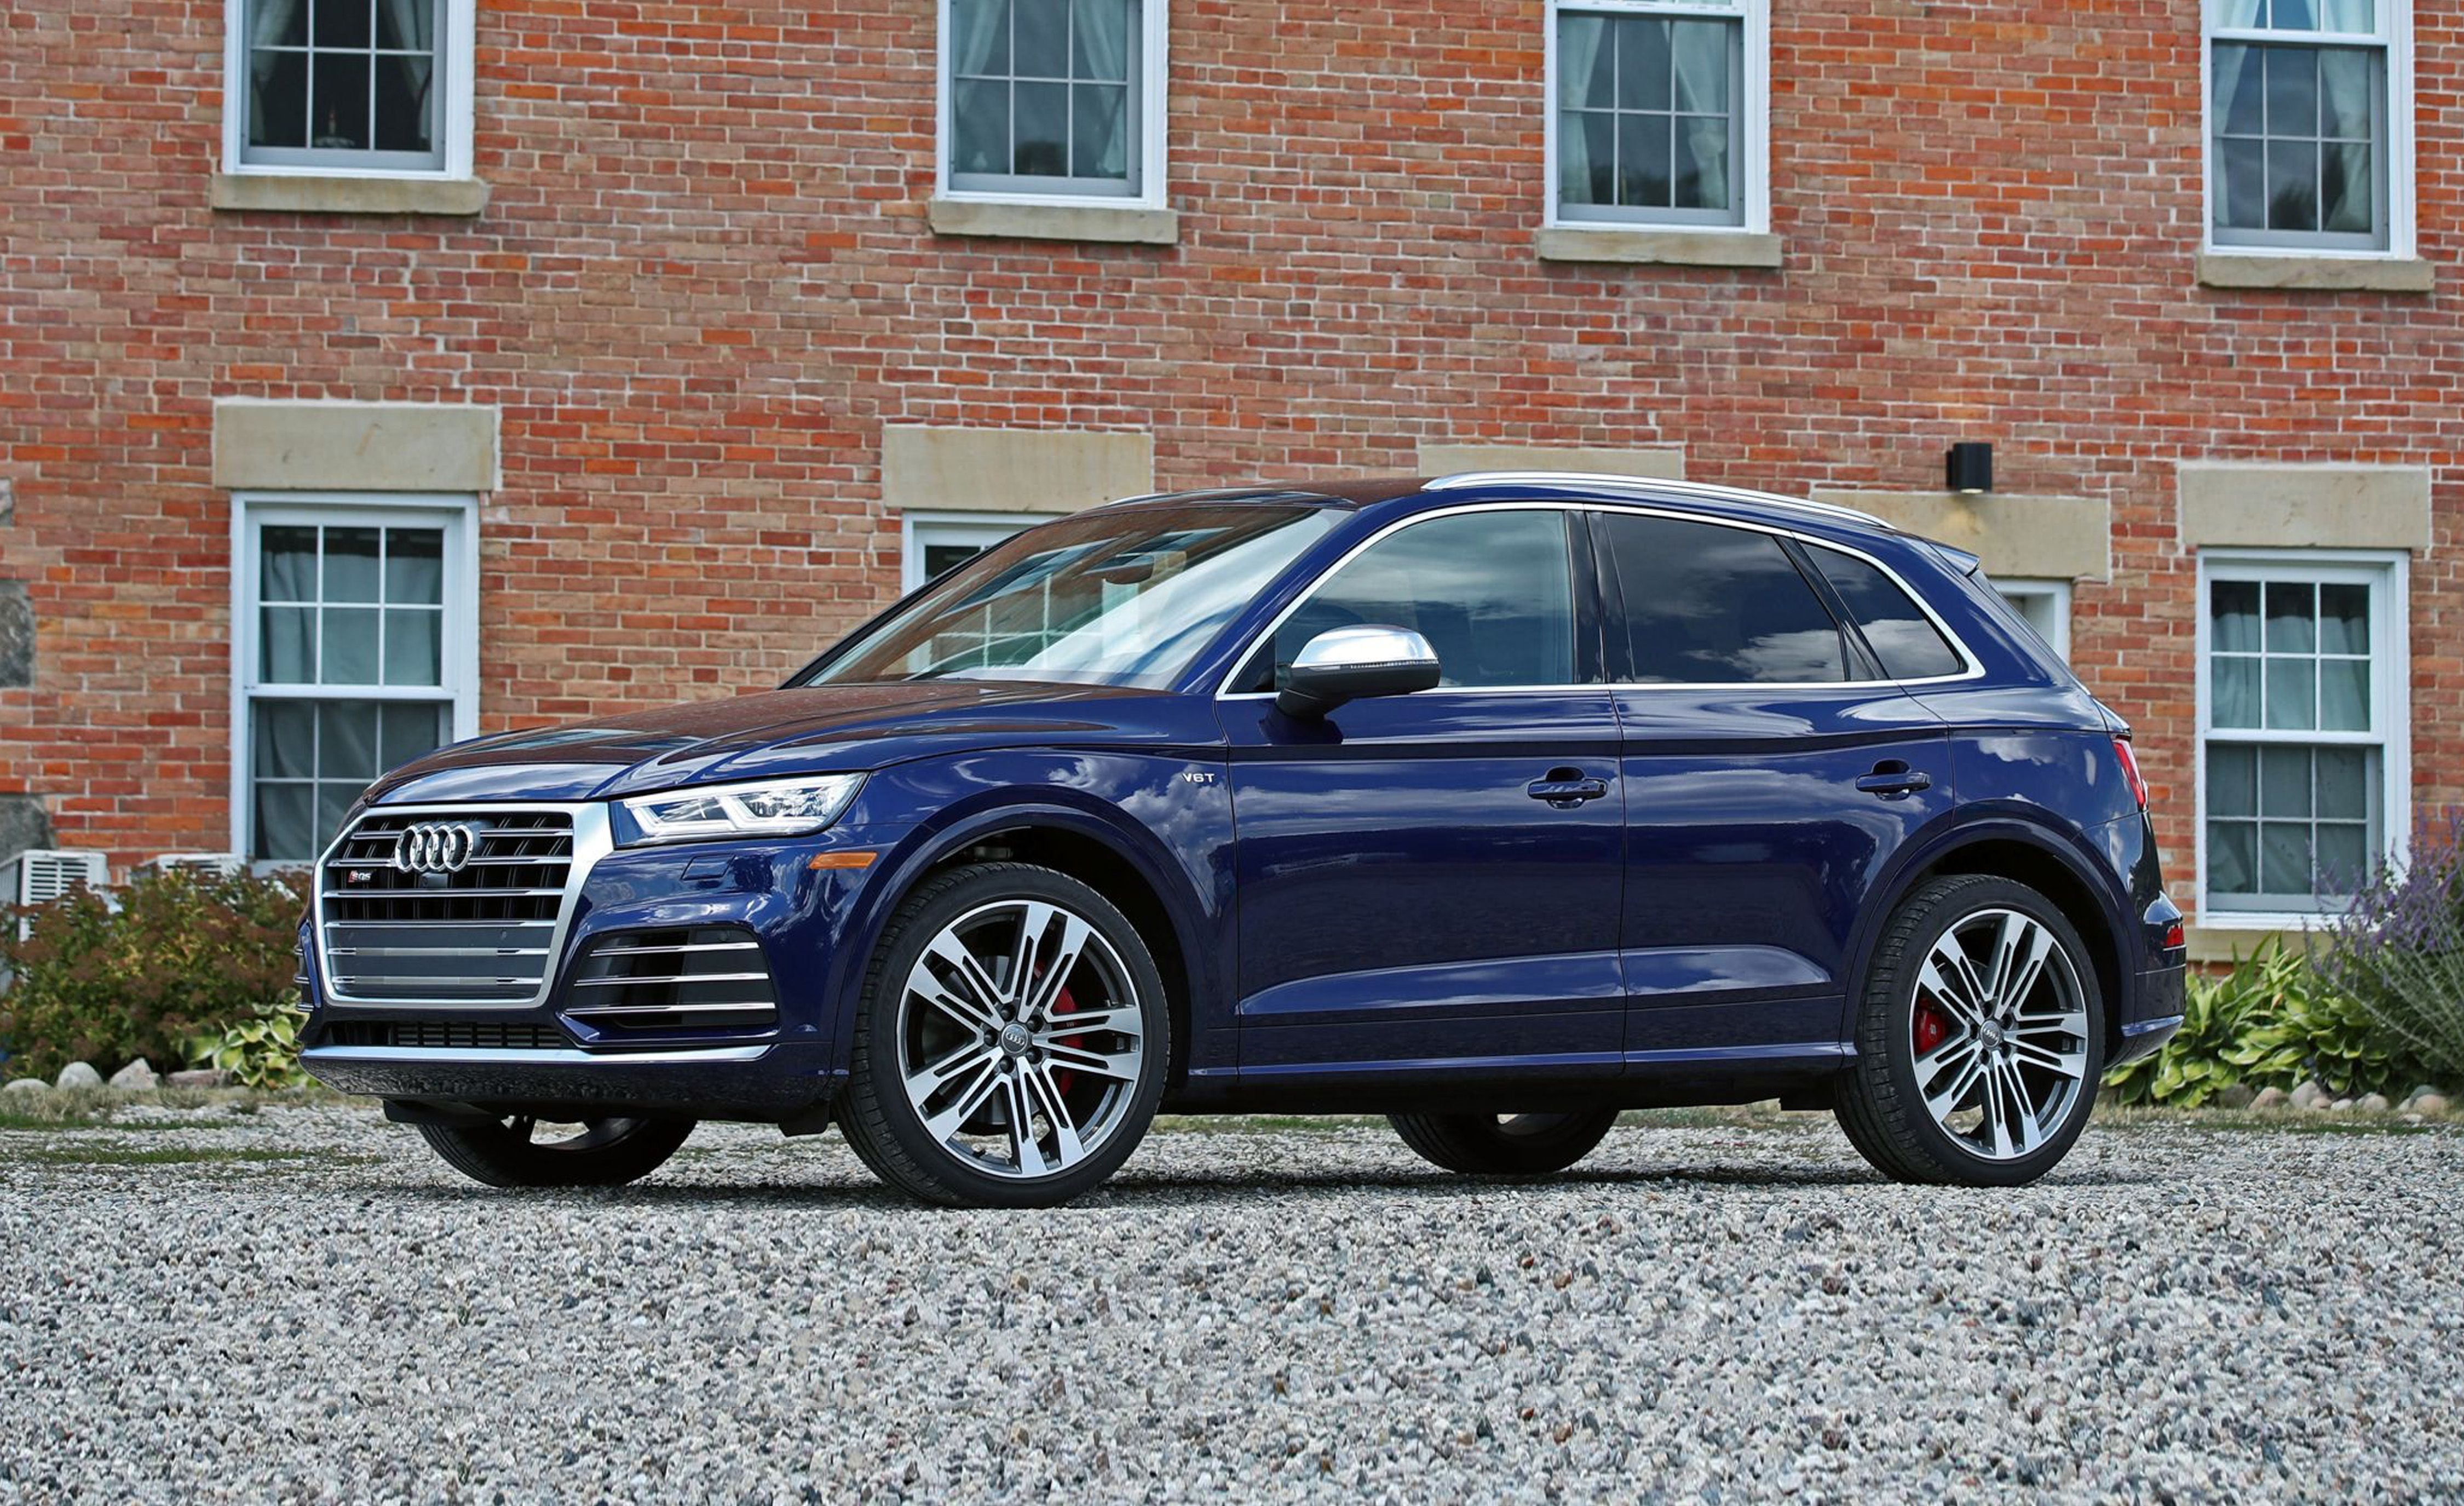 2019 audi sq5 reviews audi sq5 price photos and specs. Black Bedroom Furniture Sets. Home Design Ideas